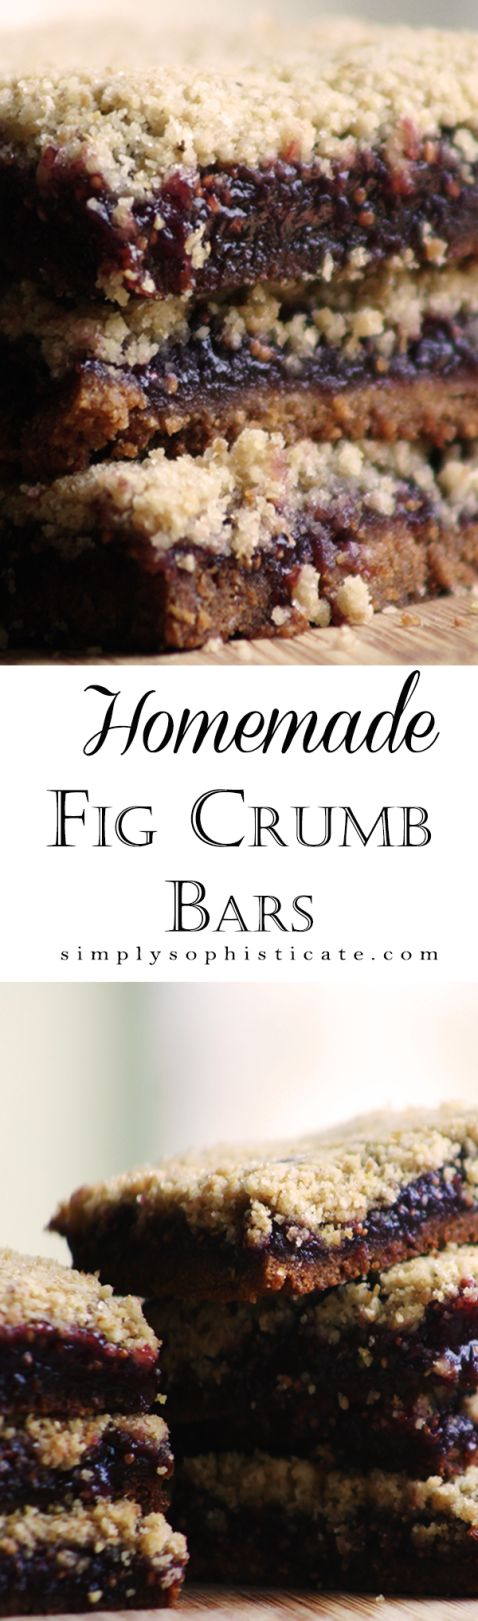 Homemade Fig Crumb Bars